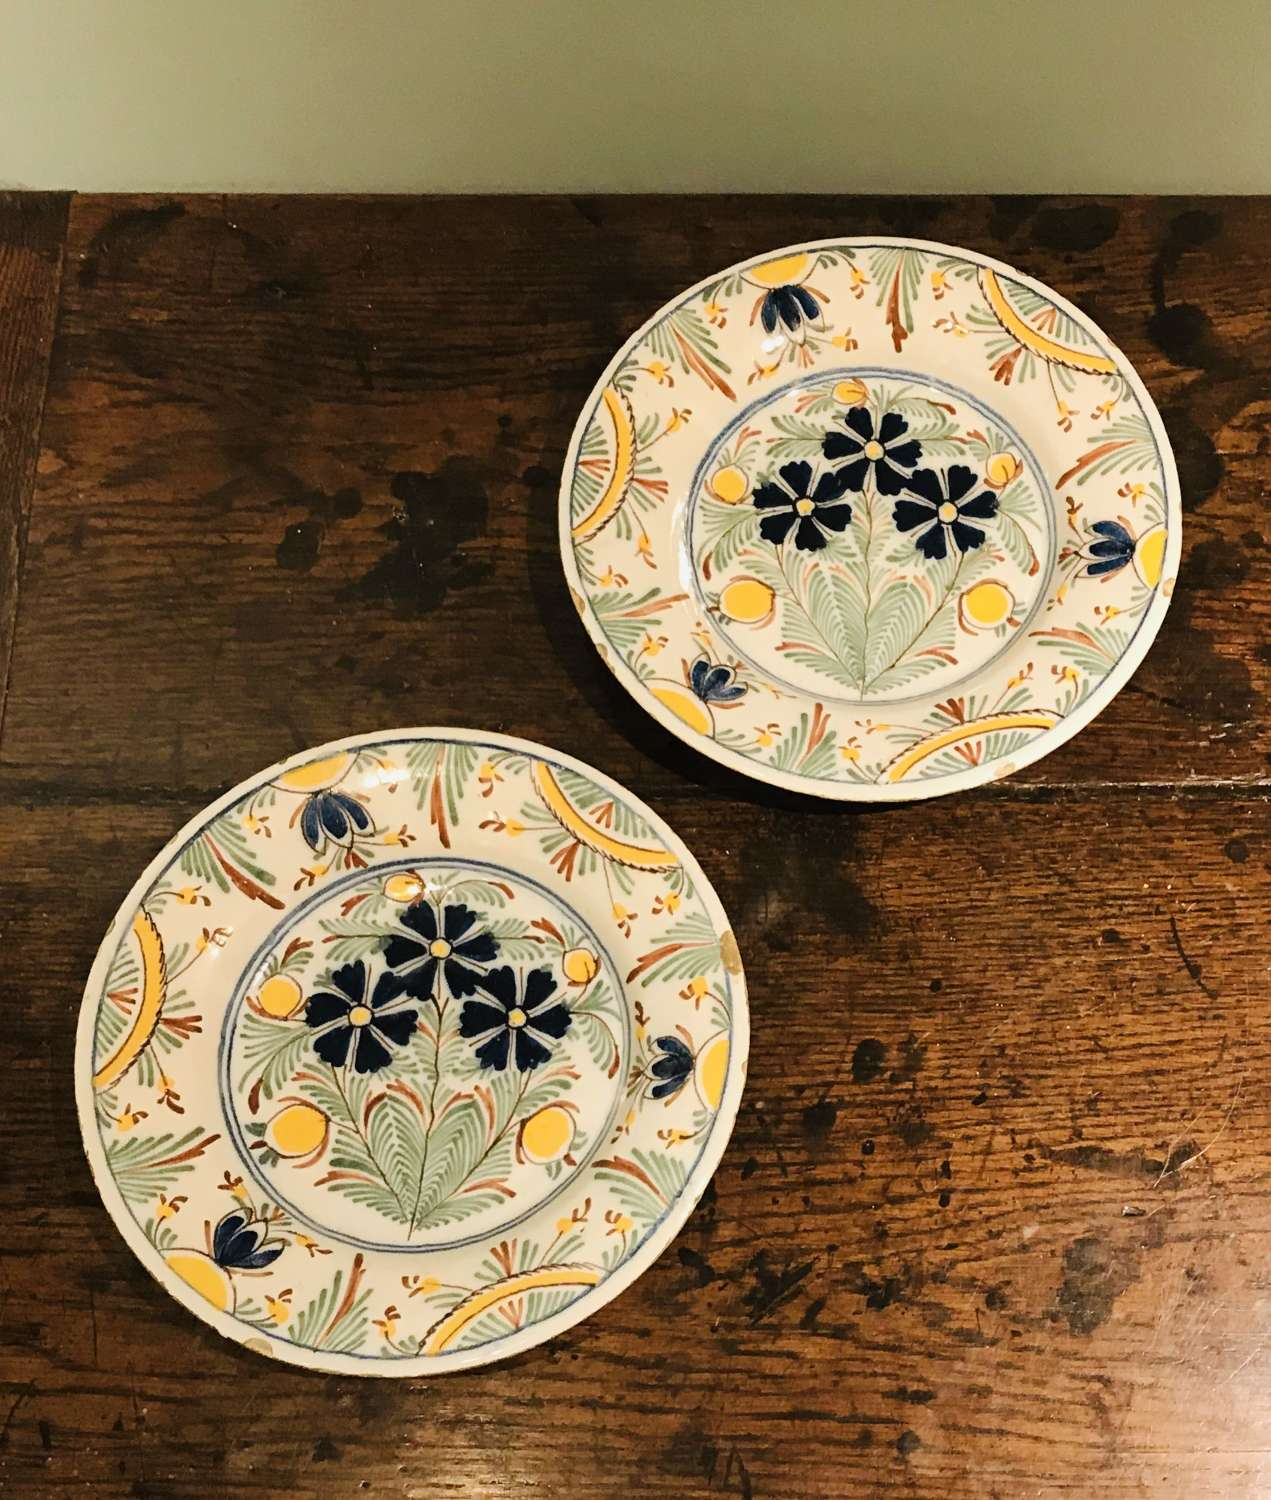 A pair of 18th c Dutch Delft polychrome plates